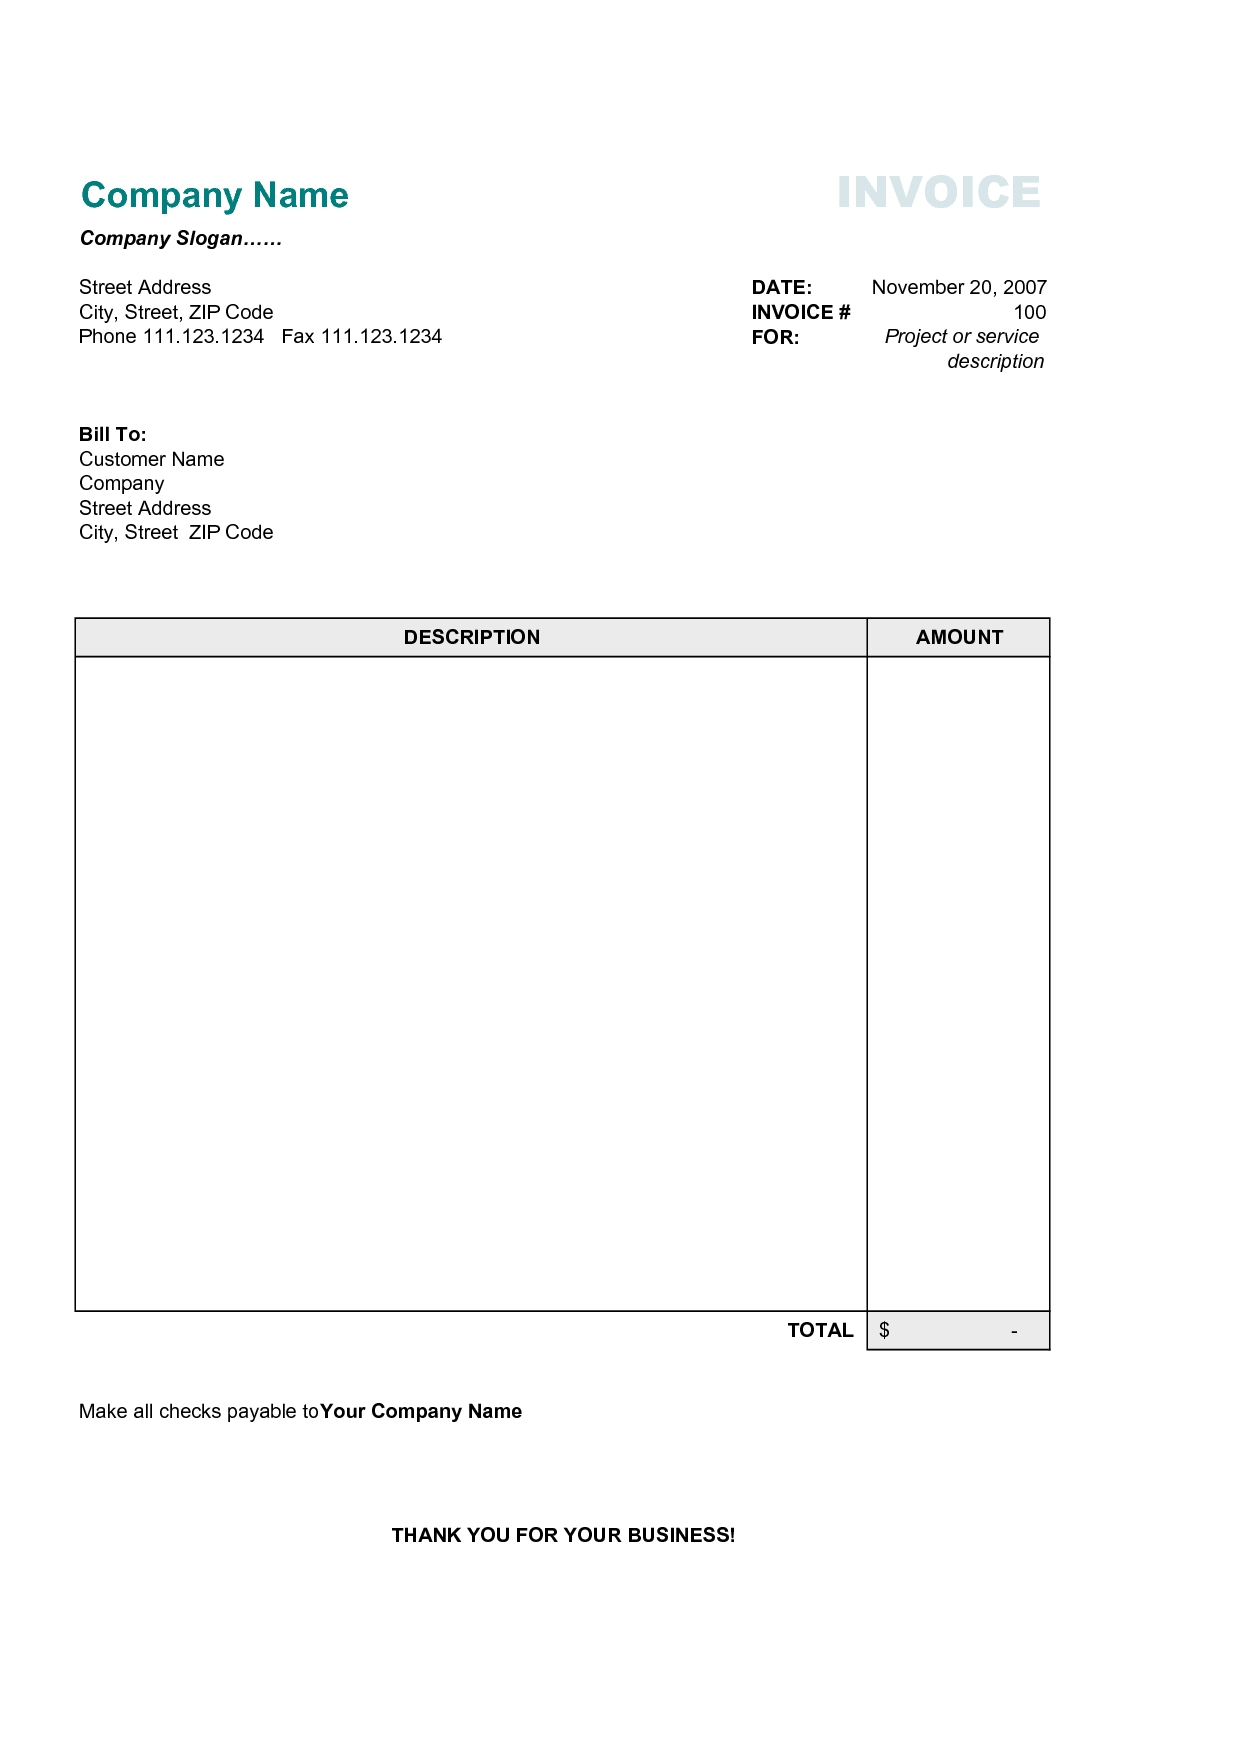 Simple Invoice Template Invoice Example - Simple invoice template excel